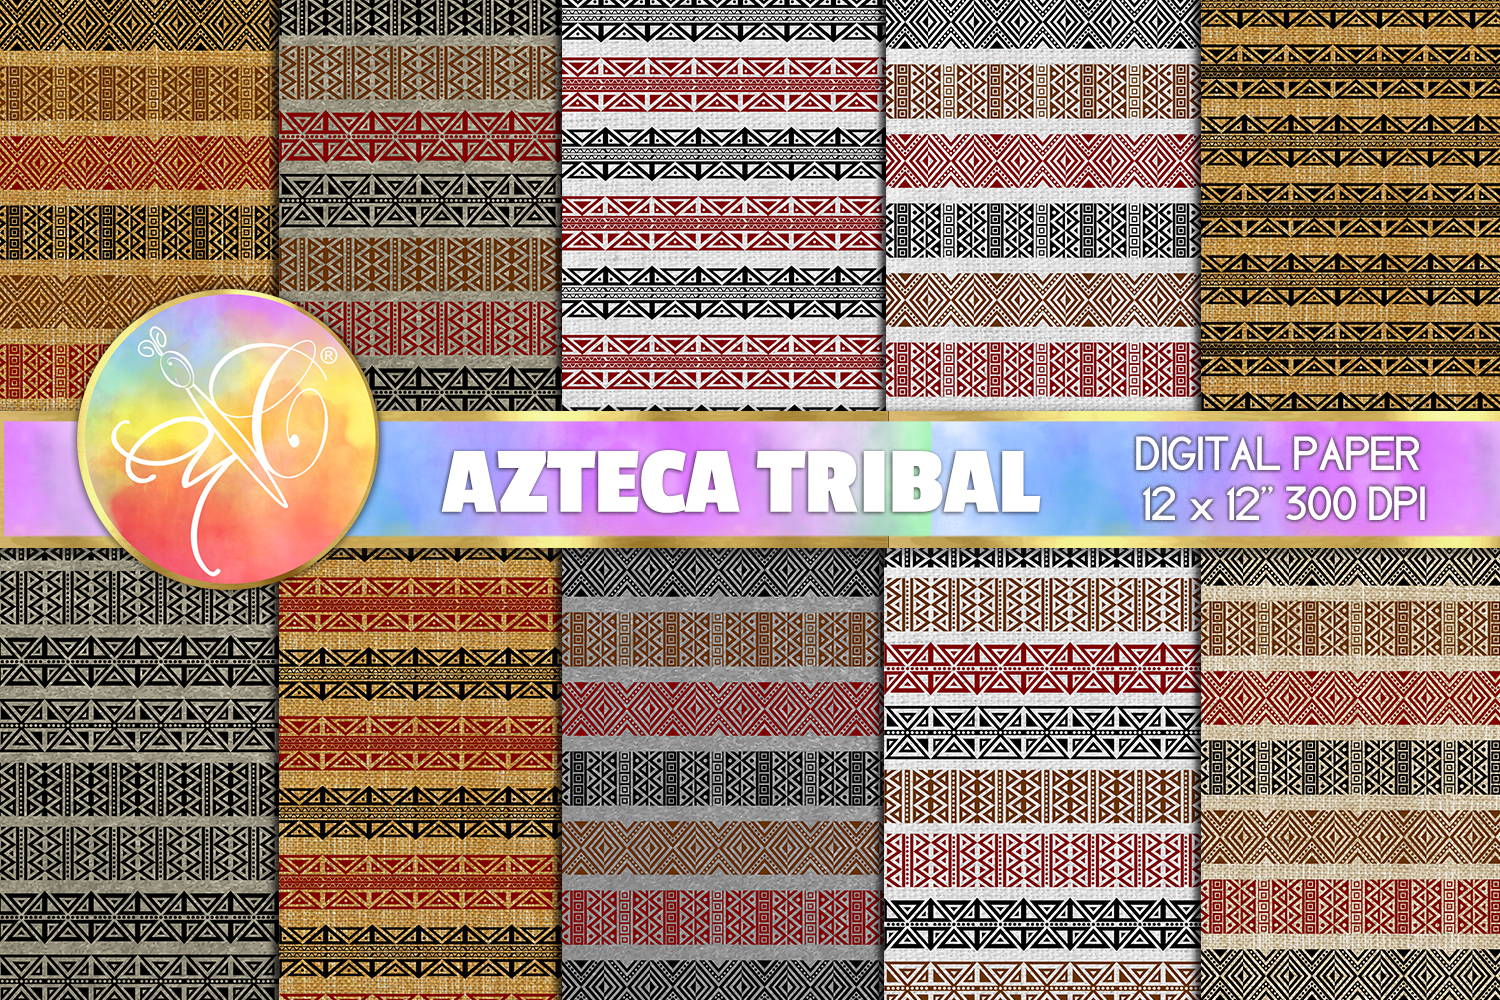 Azteca Tribal Digital Paper, Mexican Paper, Linen Paper example image 1